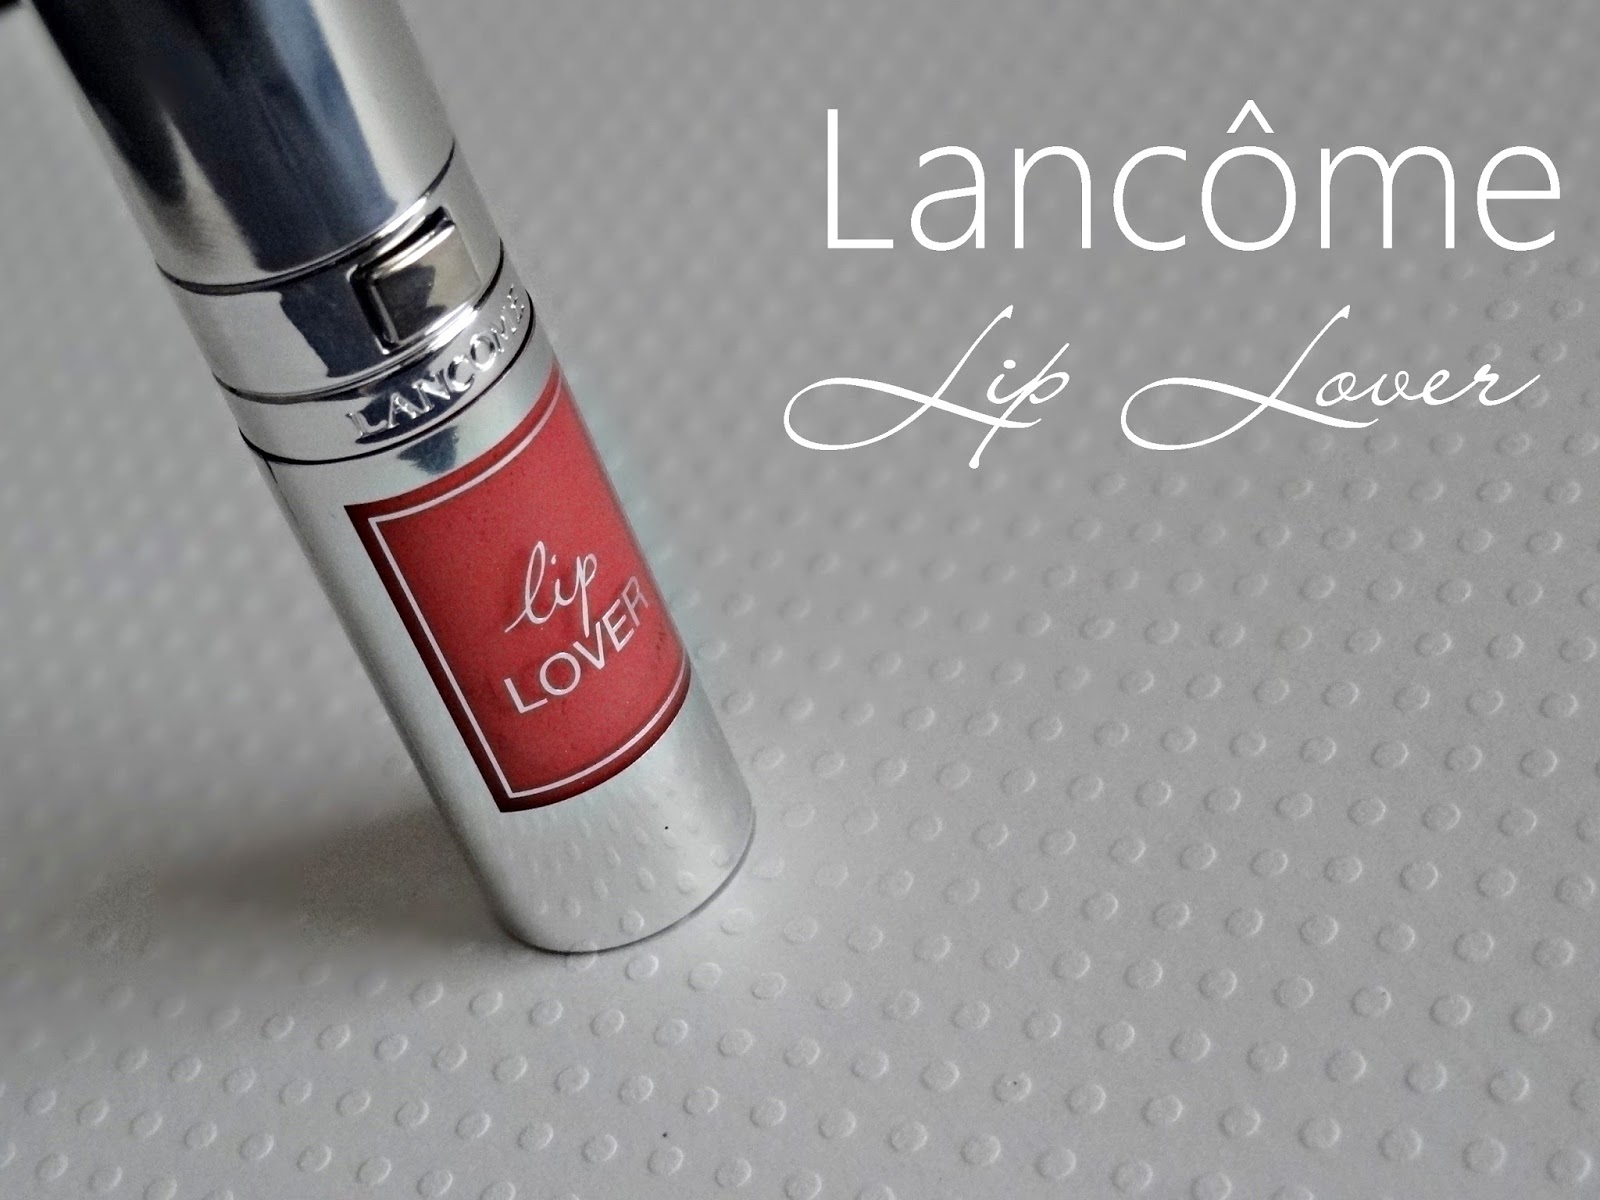 Lancome Lip Lover Dewy Lip Perfector in Beige Adage Review, Photos & Swatches